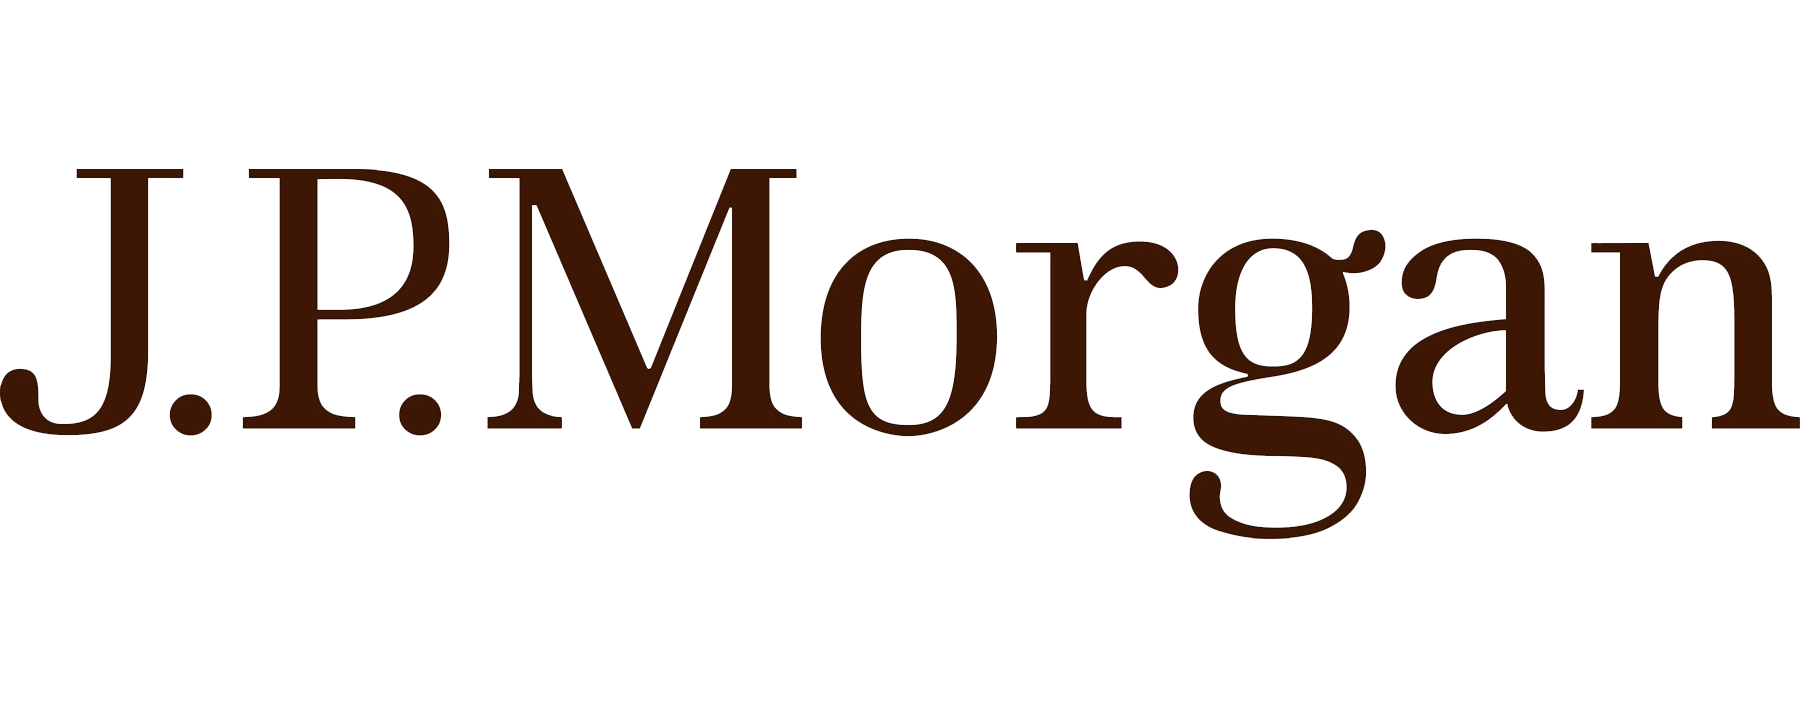 J.P.-Morgan-Logos-HD